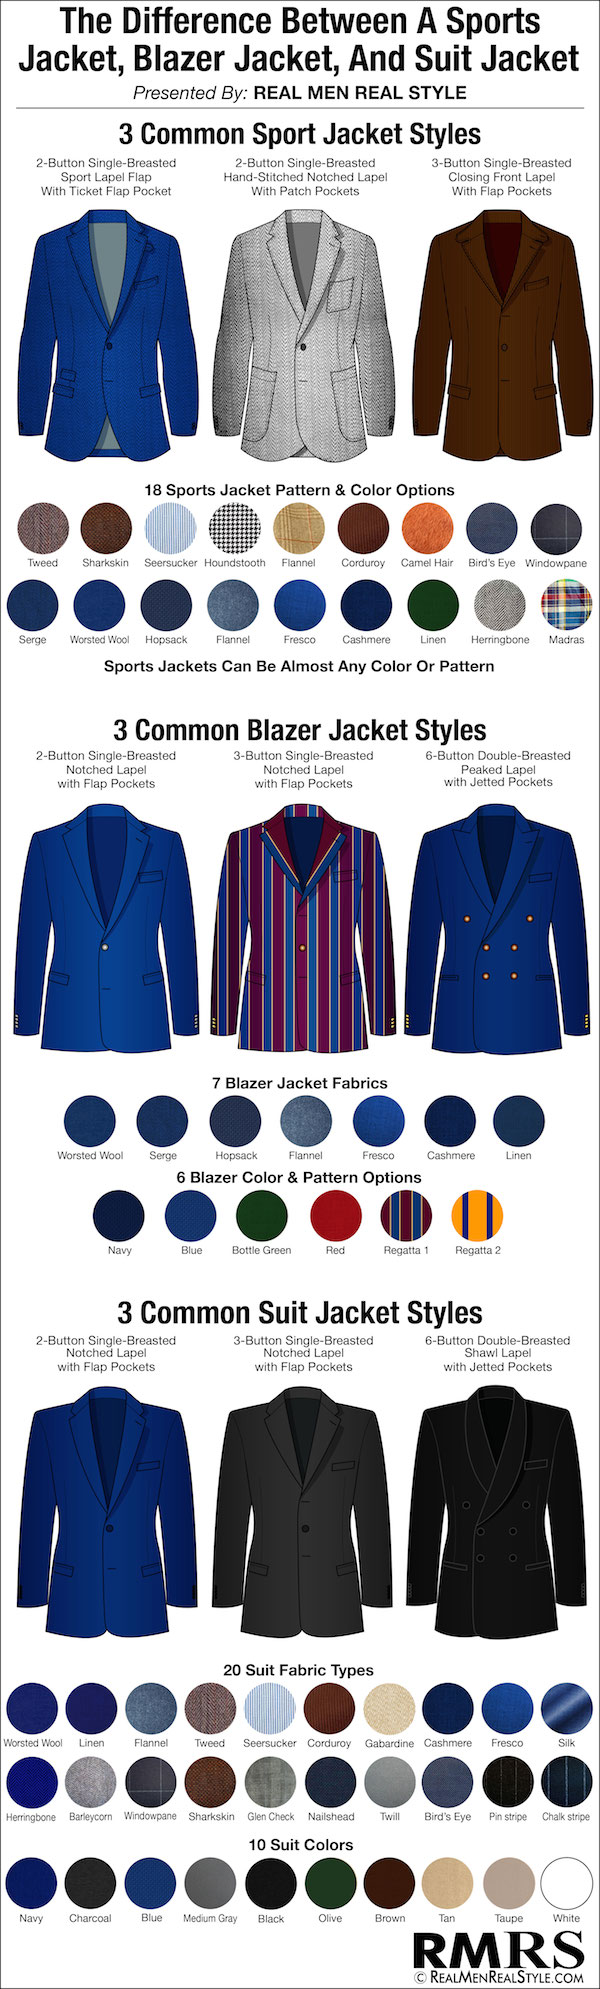 the-difference-between-a-sports-jacket-blazer-jacket-and-suit-jacket_d4e5c850-c294-4ef1-868f-0da71618e4ca